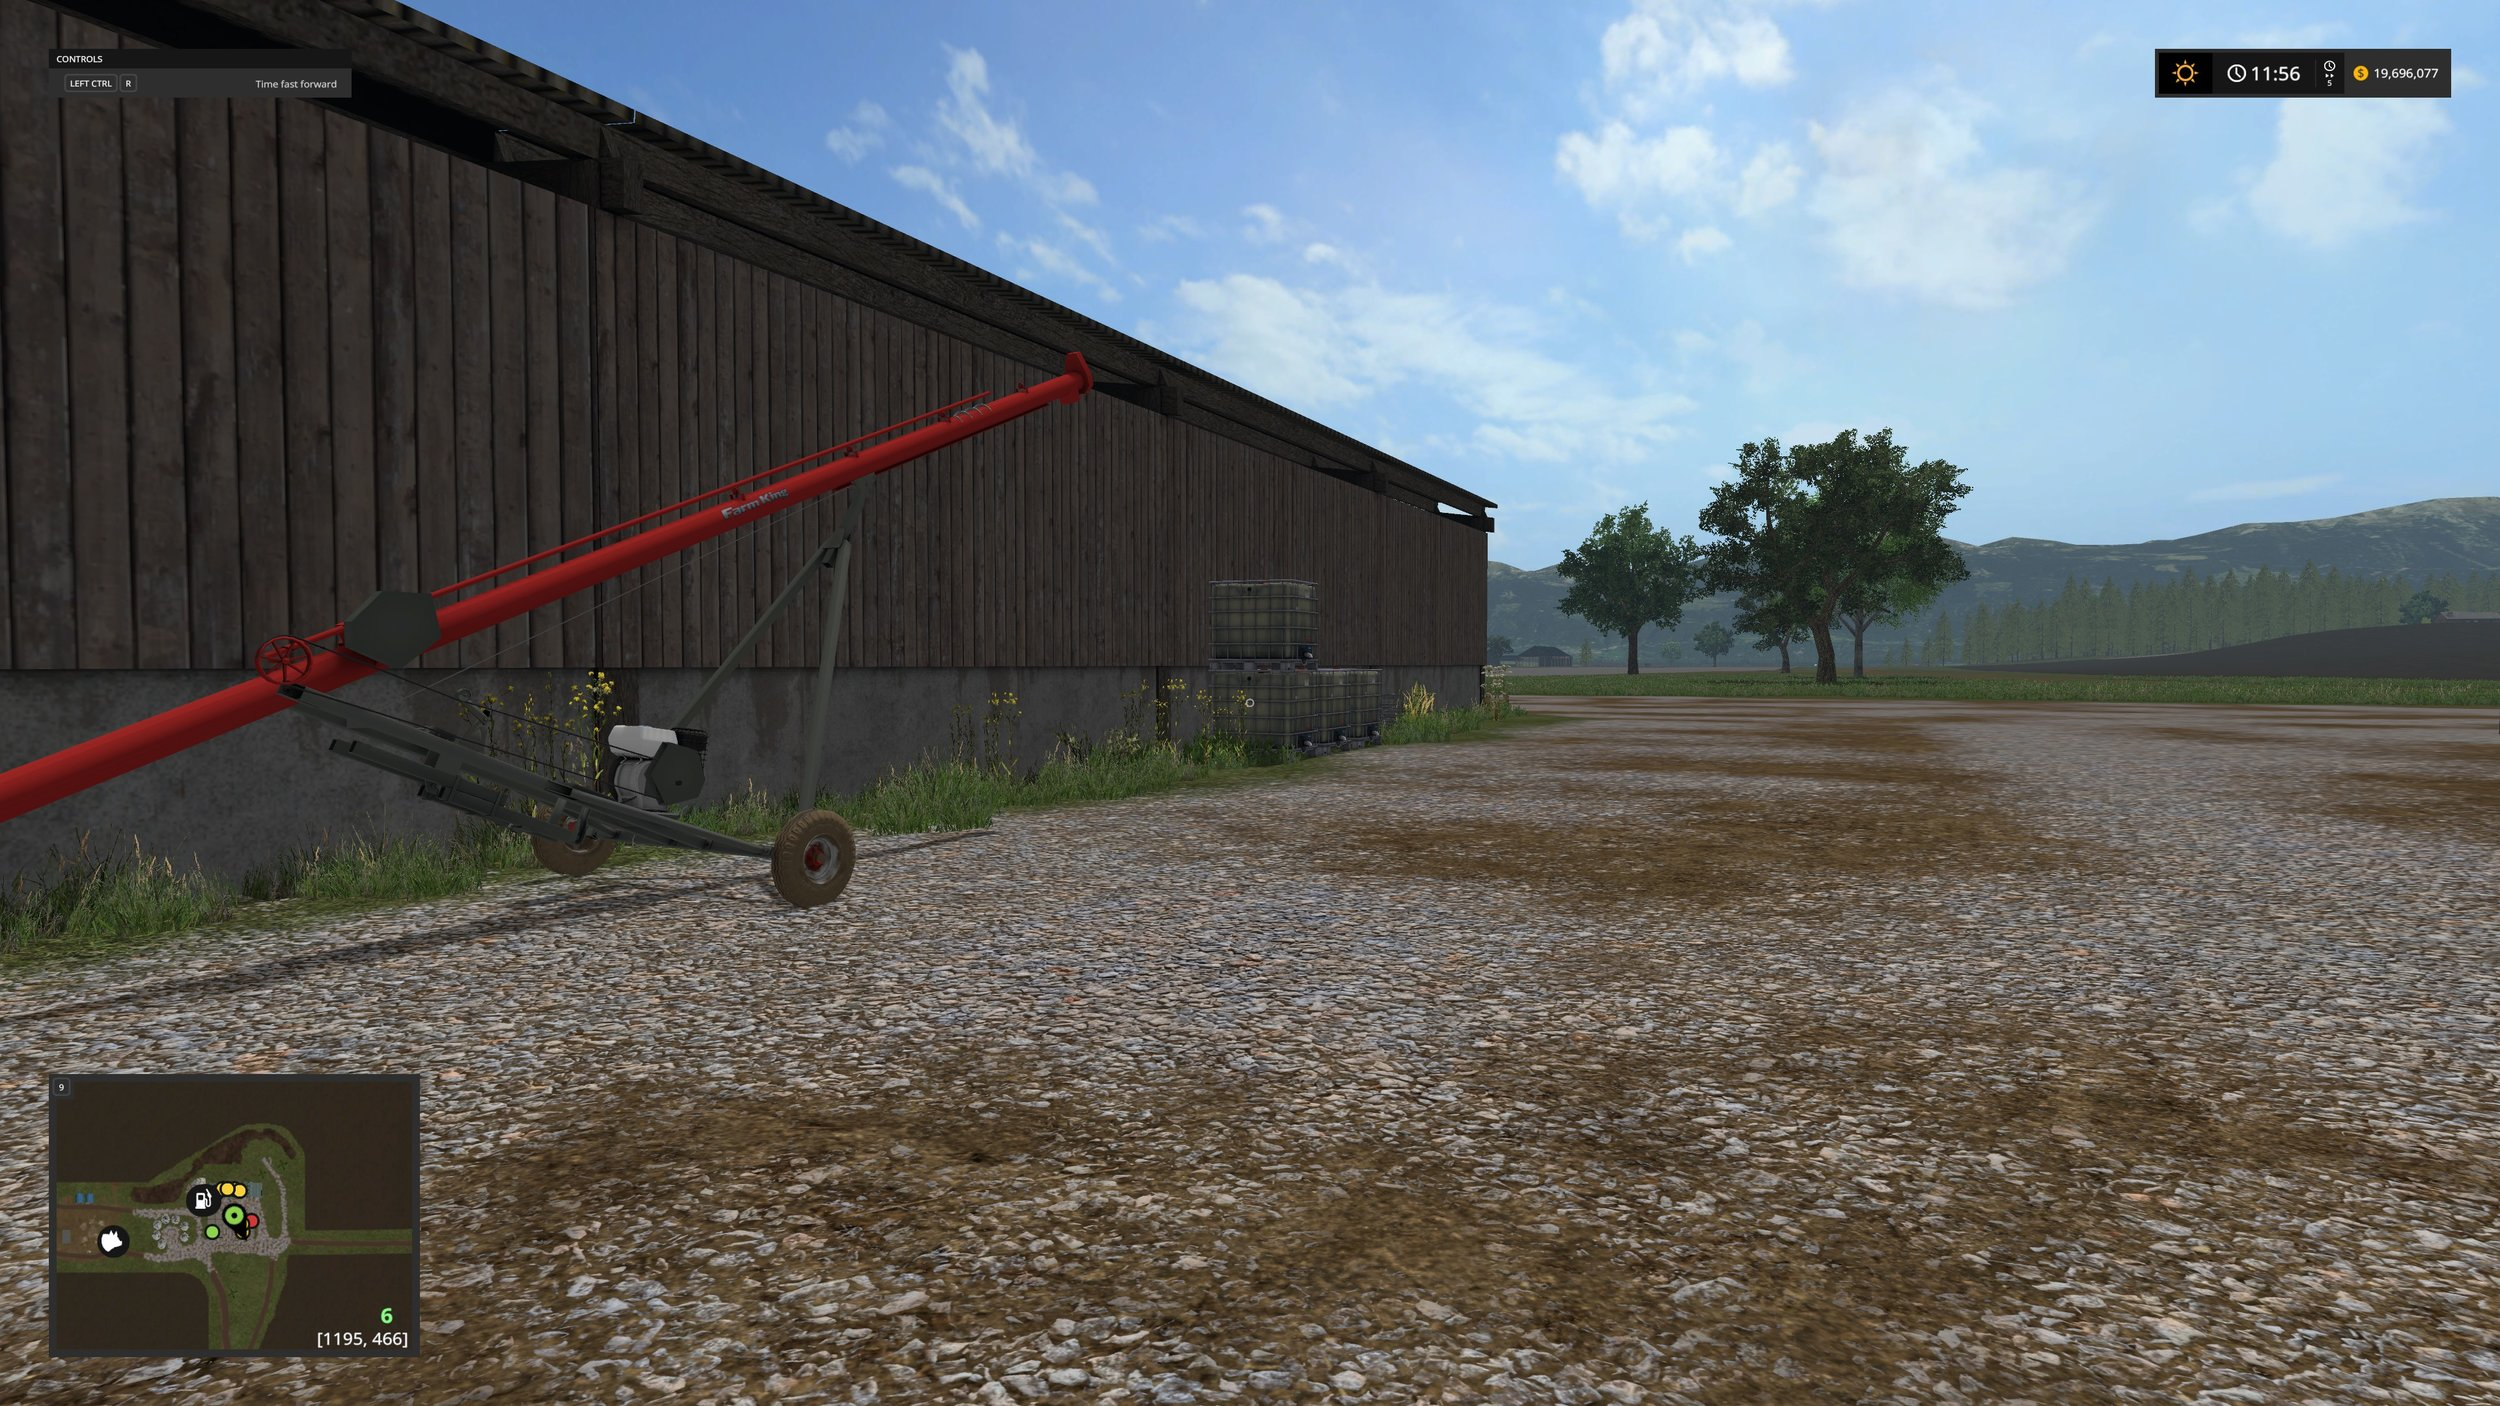 The same barn after adding some detail